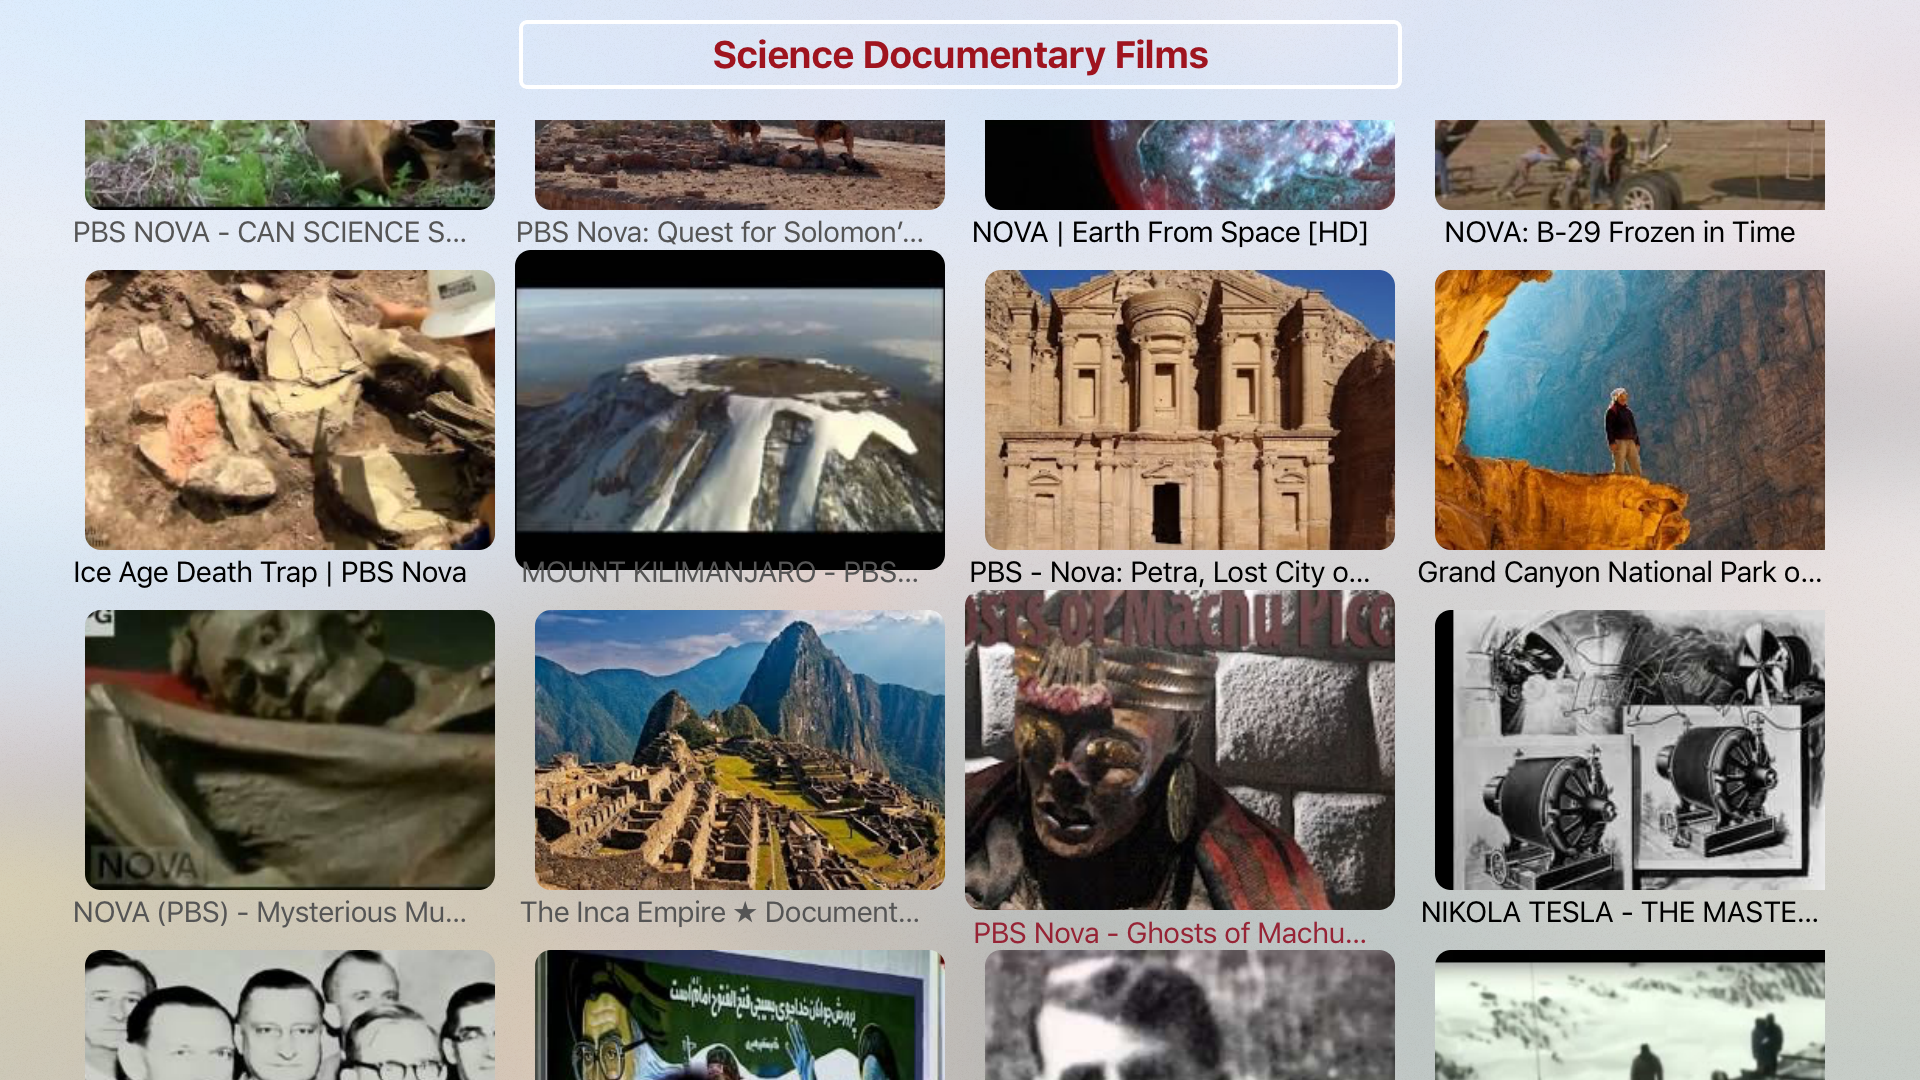 Science Documentary Films - HD Collection screenshot 4